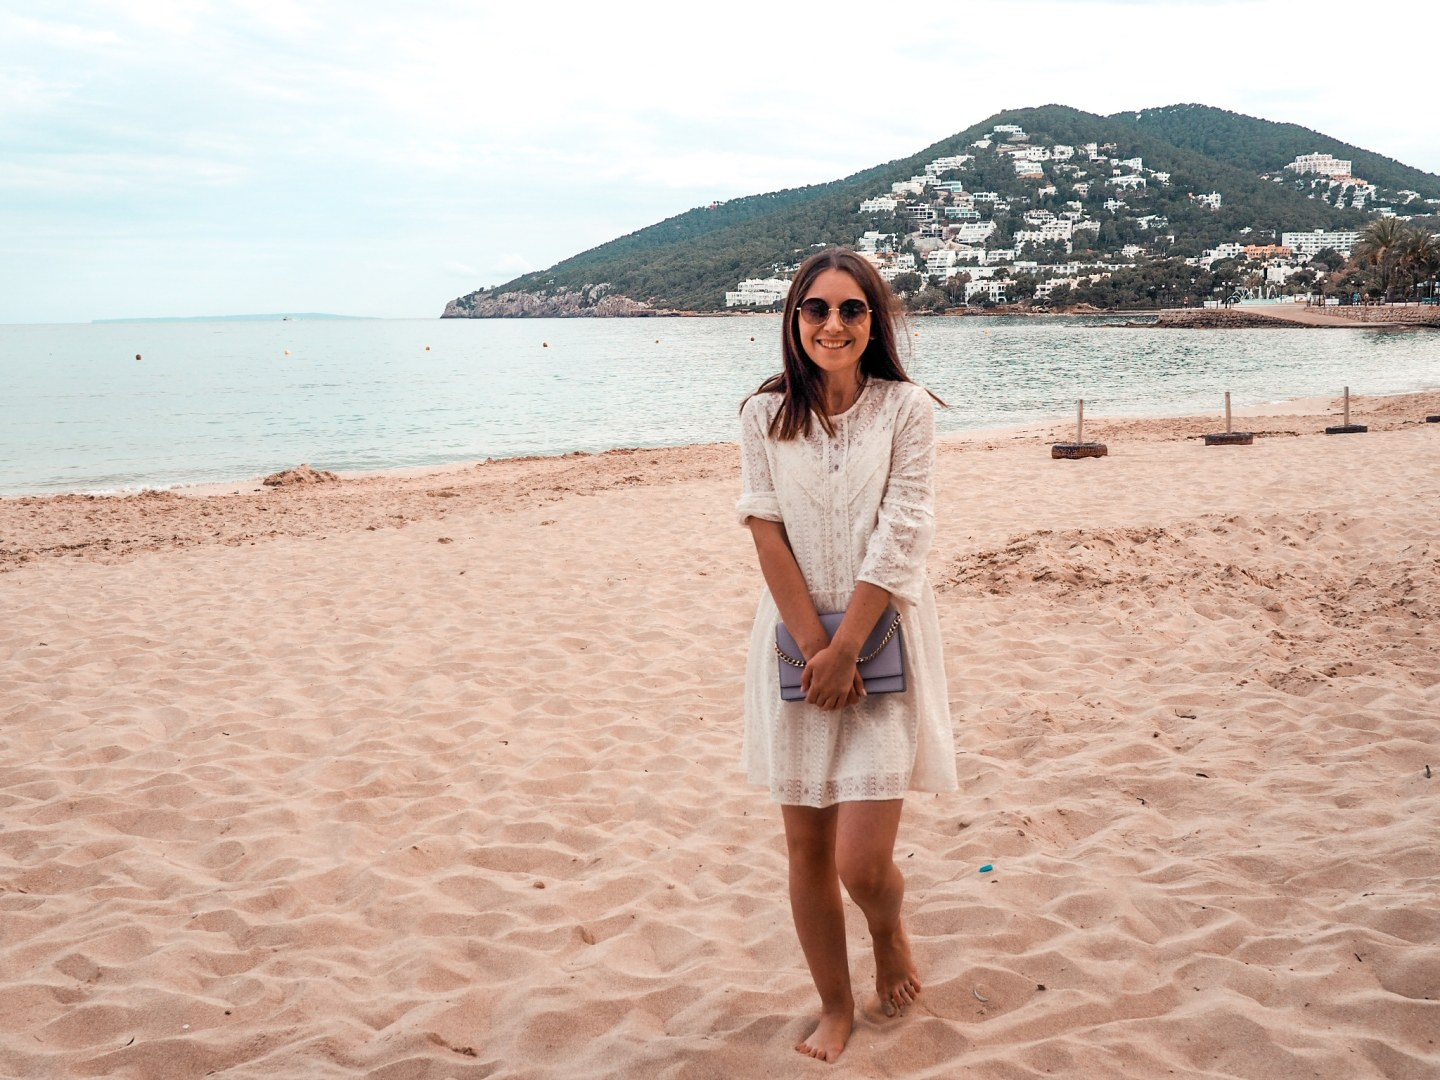 Working on understanding my body and my needs | Hollie in Wanderlust | Lifestyle Blogger